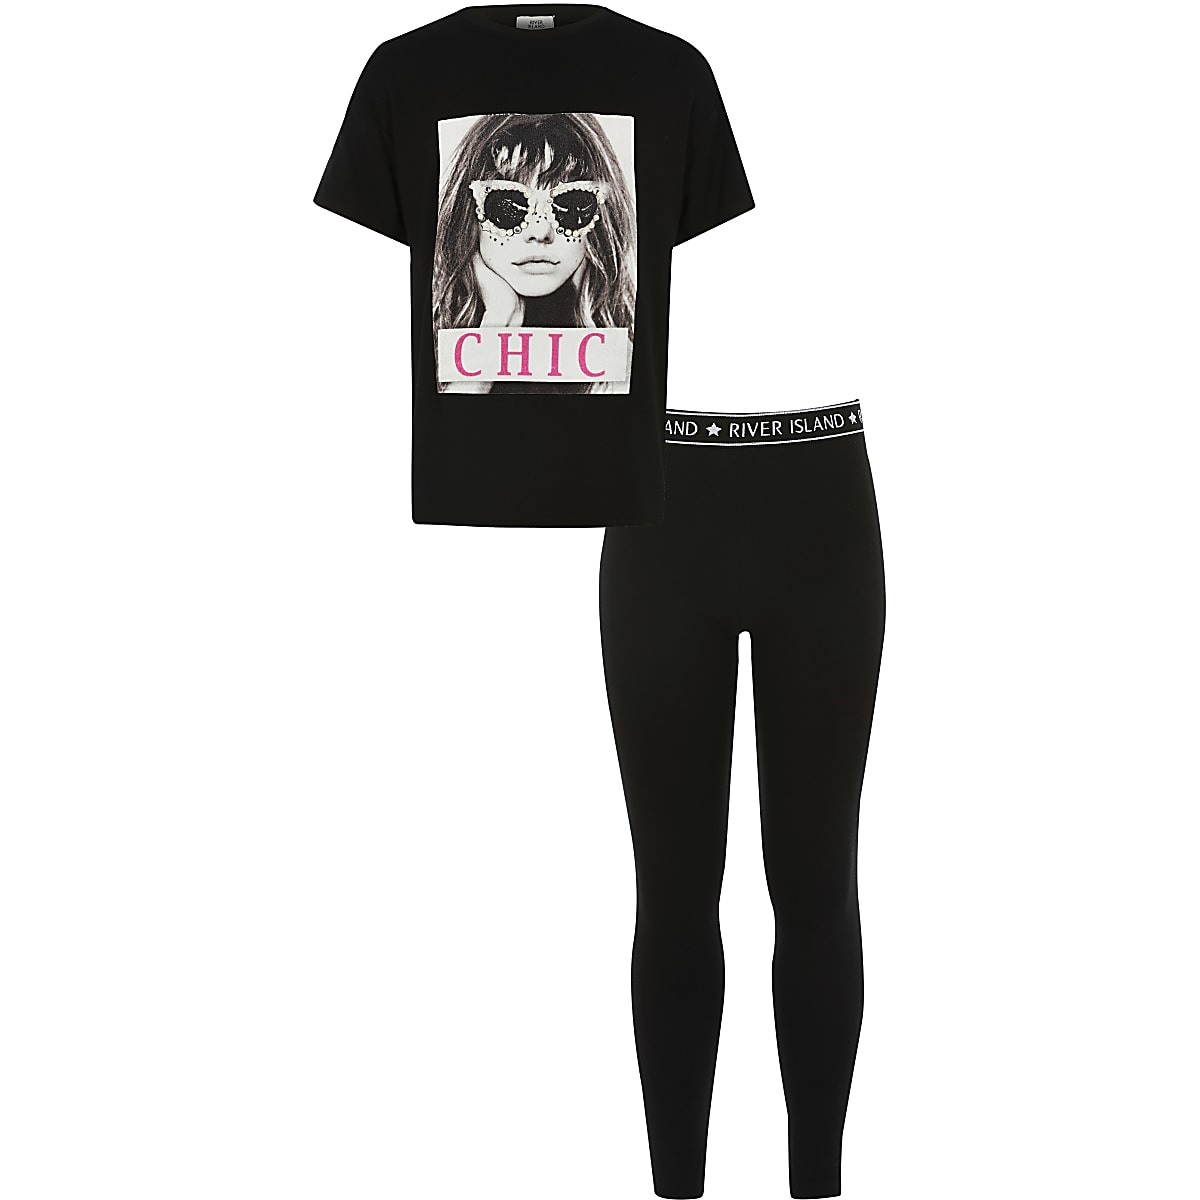 Girls 'Chic' black embellished T-shirt outfit